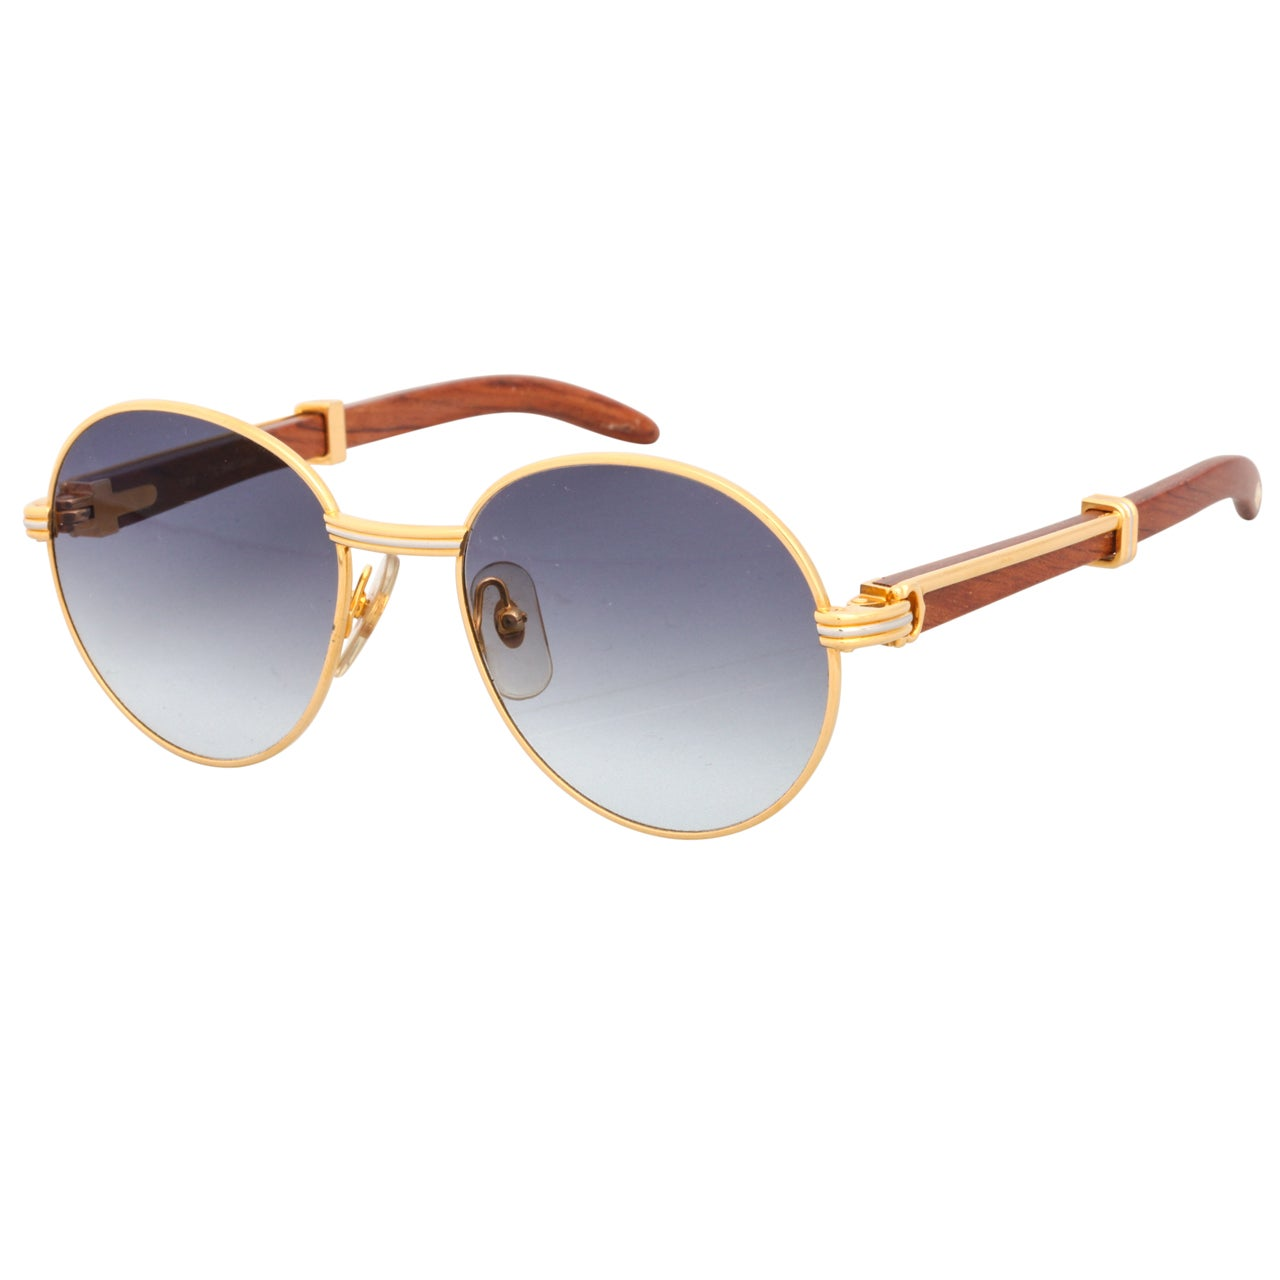 Cartier Bagatelle Palisander Sunglasses 1